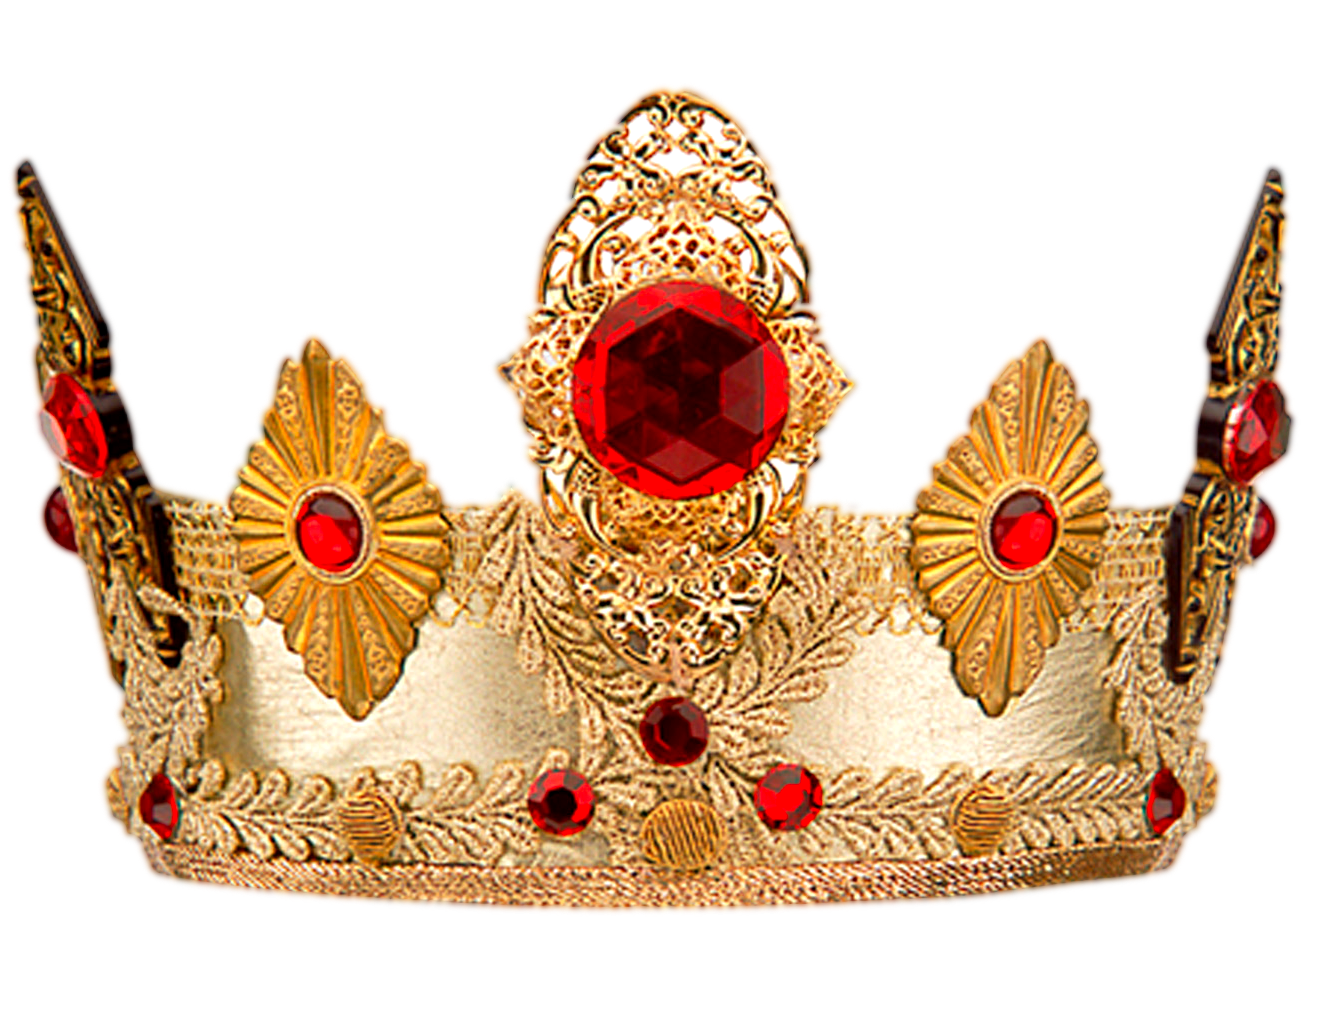 Royal princess crown clipart free download png freeuse CROWN PNG IMAGES FREE DOWNLOAD - Princess, Queen, Princess, Flower png freeuse